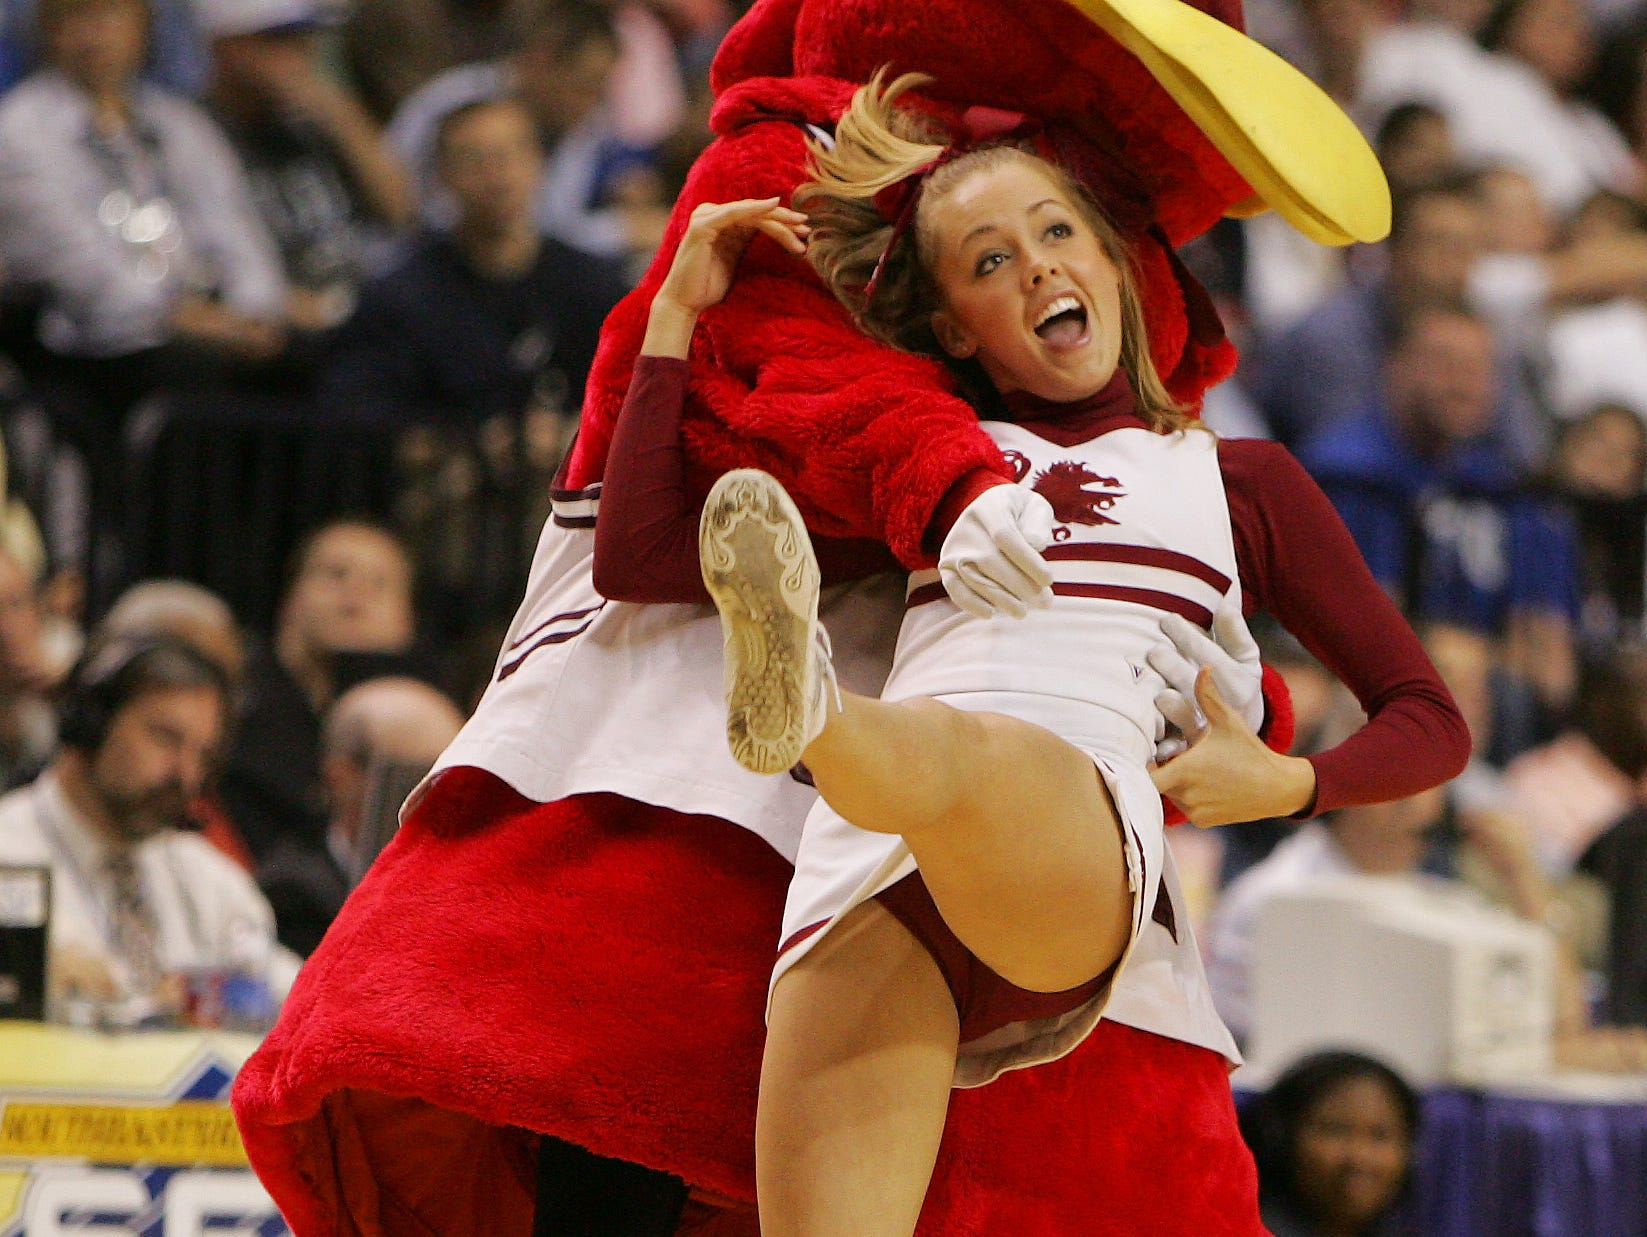 South Carolina cheerleaders perform in the second half of a semi-final game against Kentucky at the 2006 Southeastern Conference basketball tournament, Saturday, March 11, 2006, at the Gaylord Entertainment Center in Nashville, Tenn. South Carolina won 65-61. (AP Photo/John Bazemore)